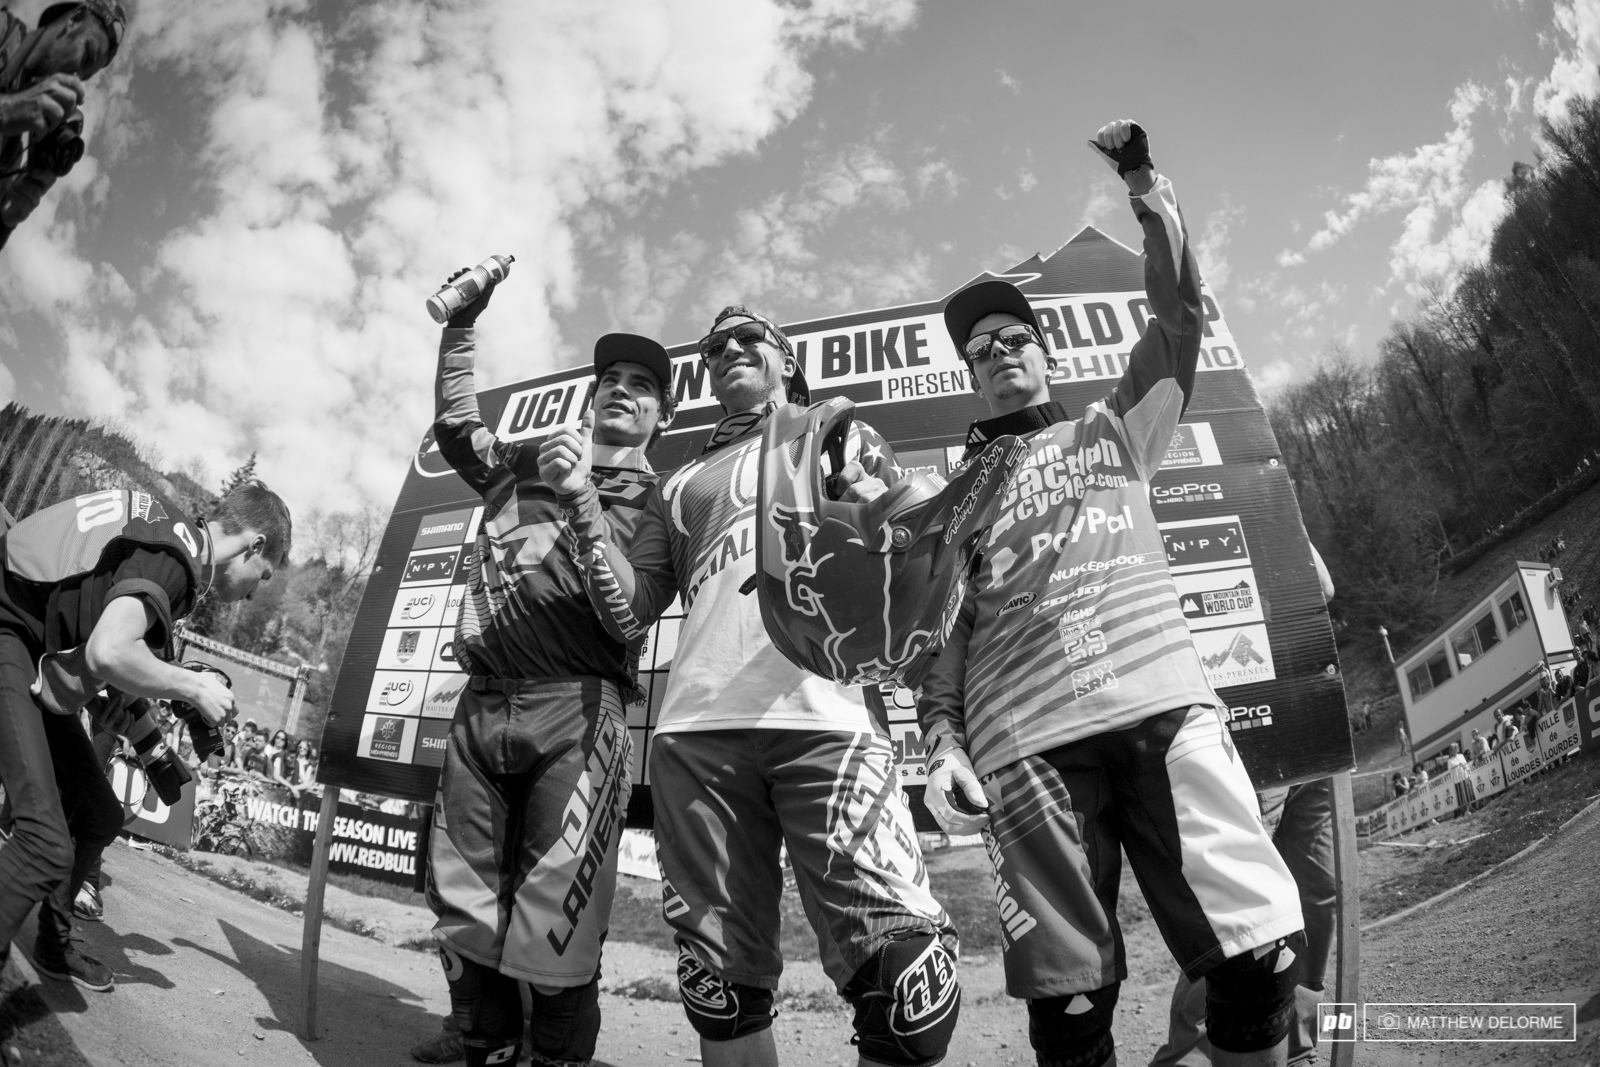 Aaron Gwin Loic Bruni and Mike Jones. Things surely got shaken up here in Lourdes. It s going to be an exciting season.